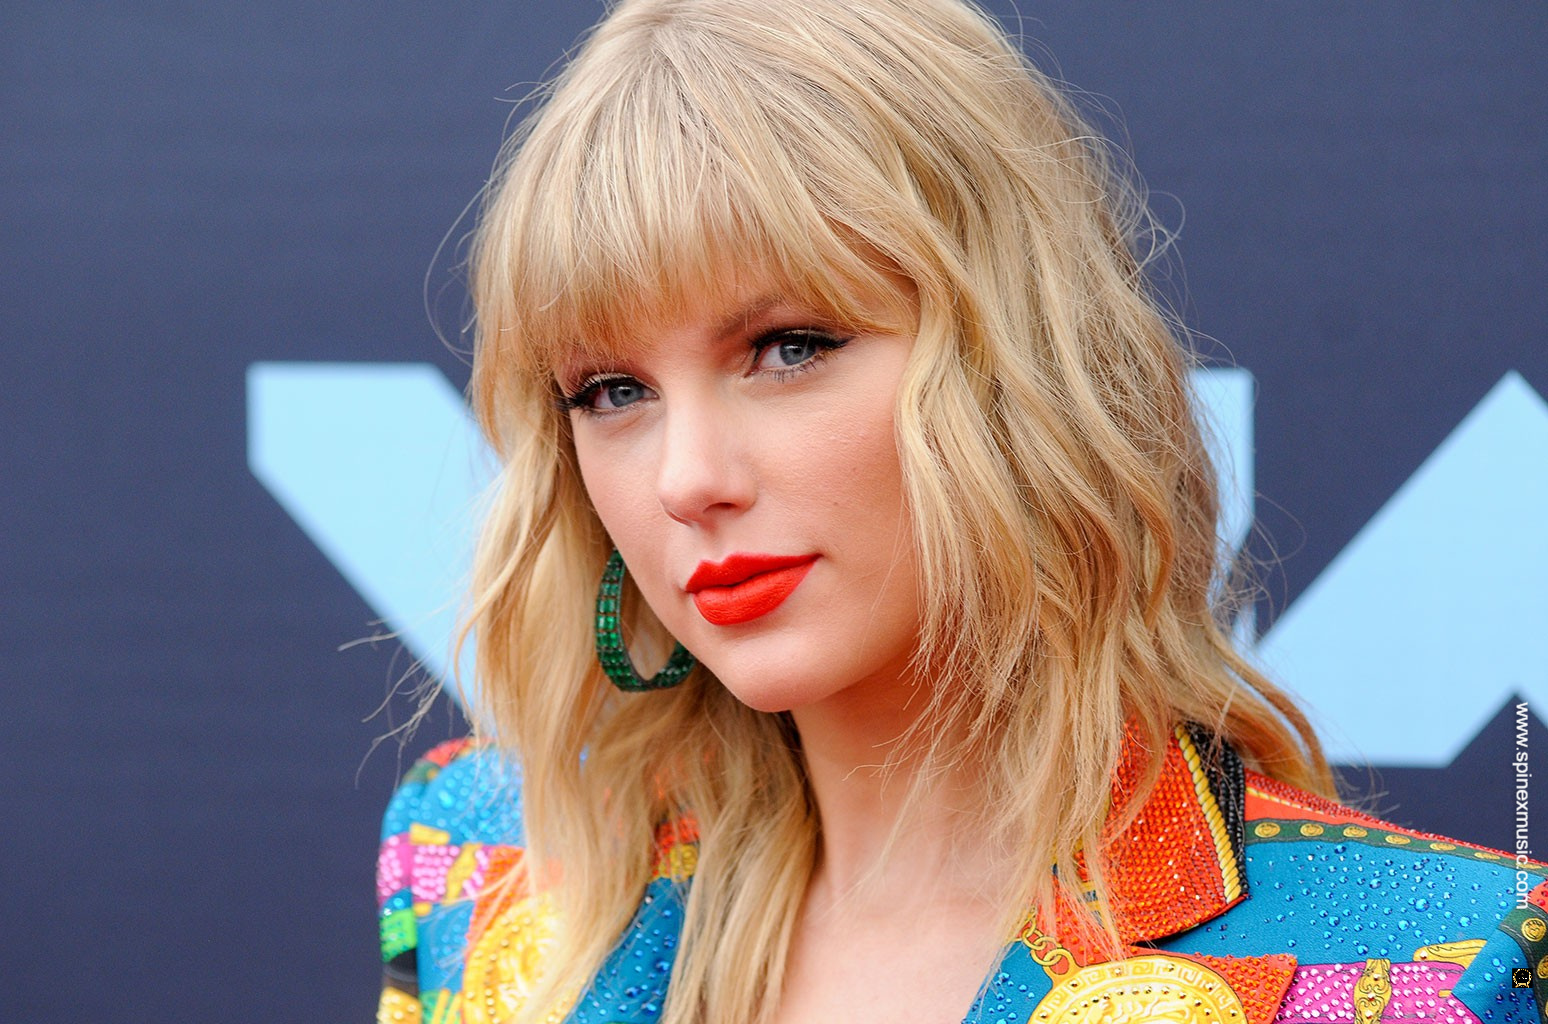 Taylor Swift's 'Evermore' Album Breaks Record For U.S. Biggest Vinyl Sales In A Week